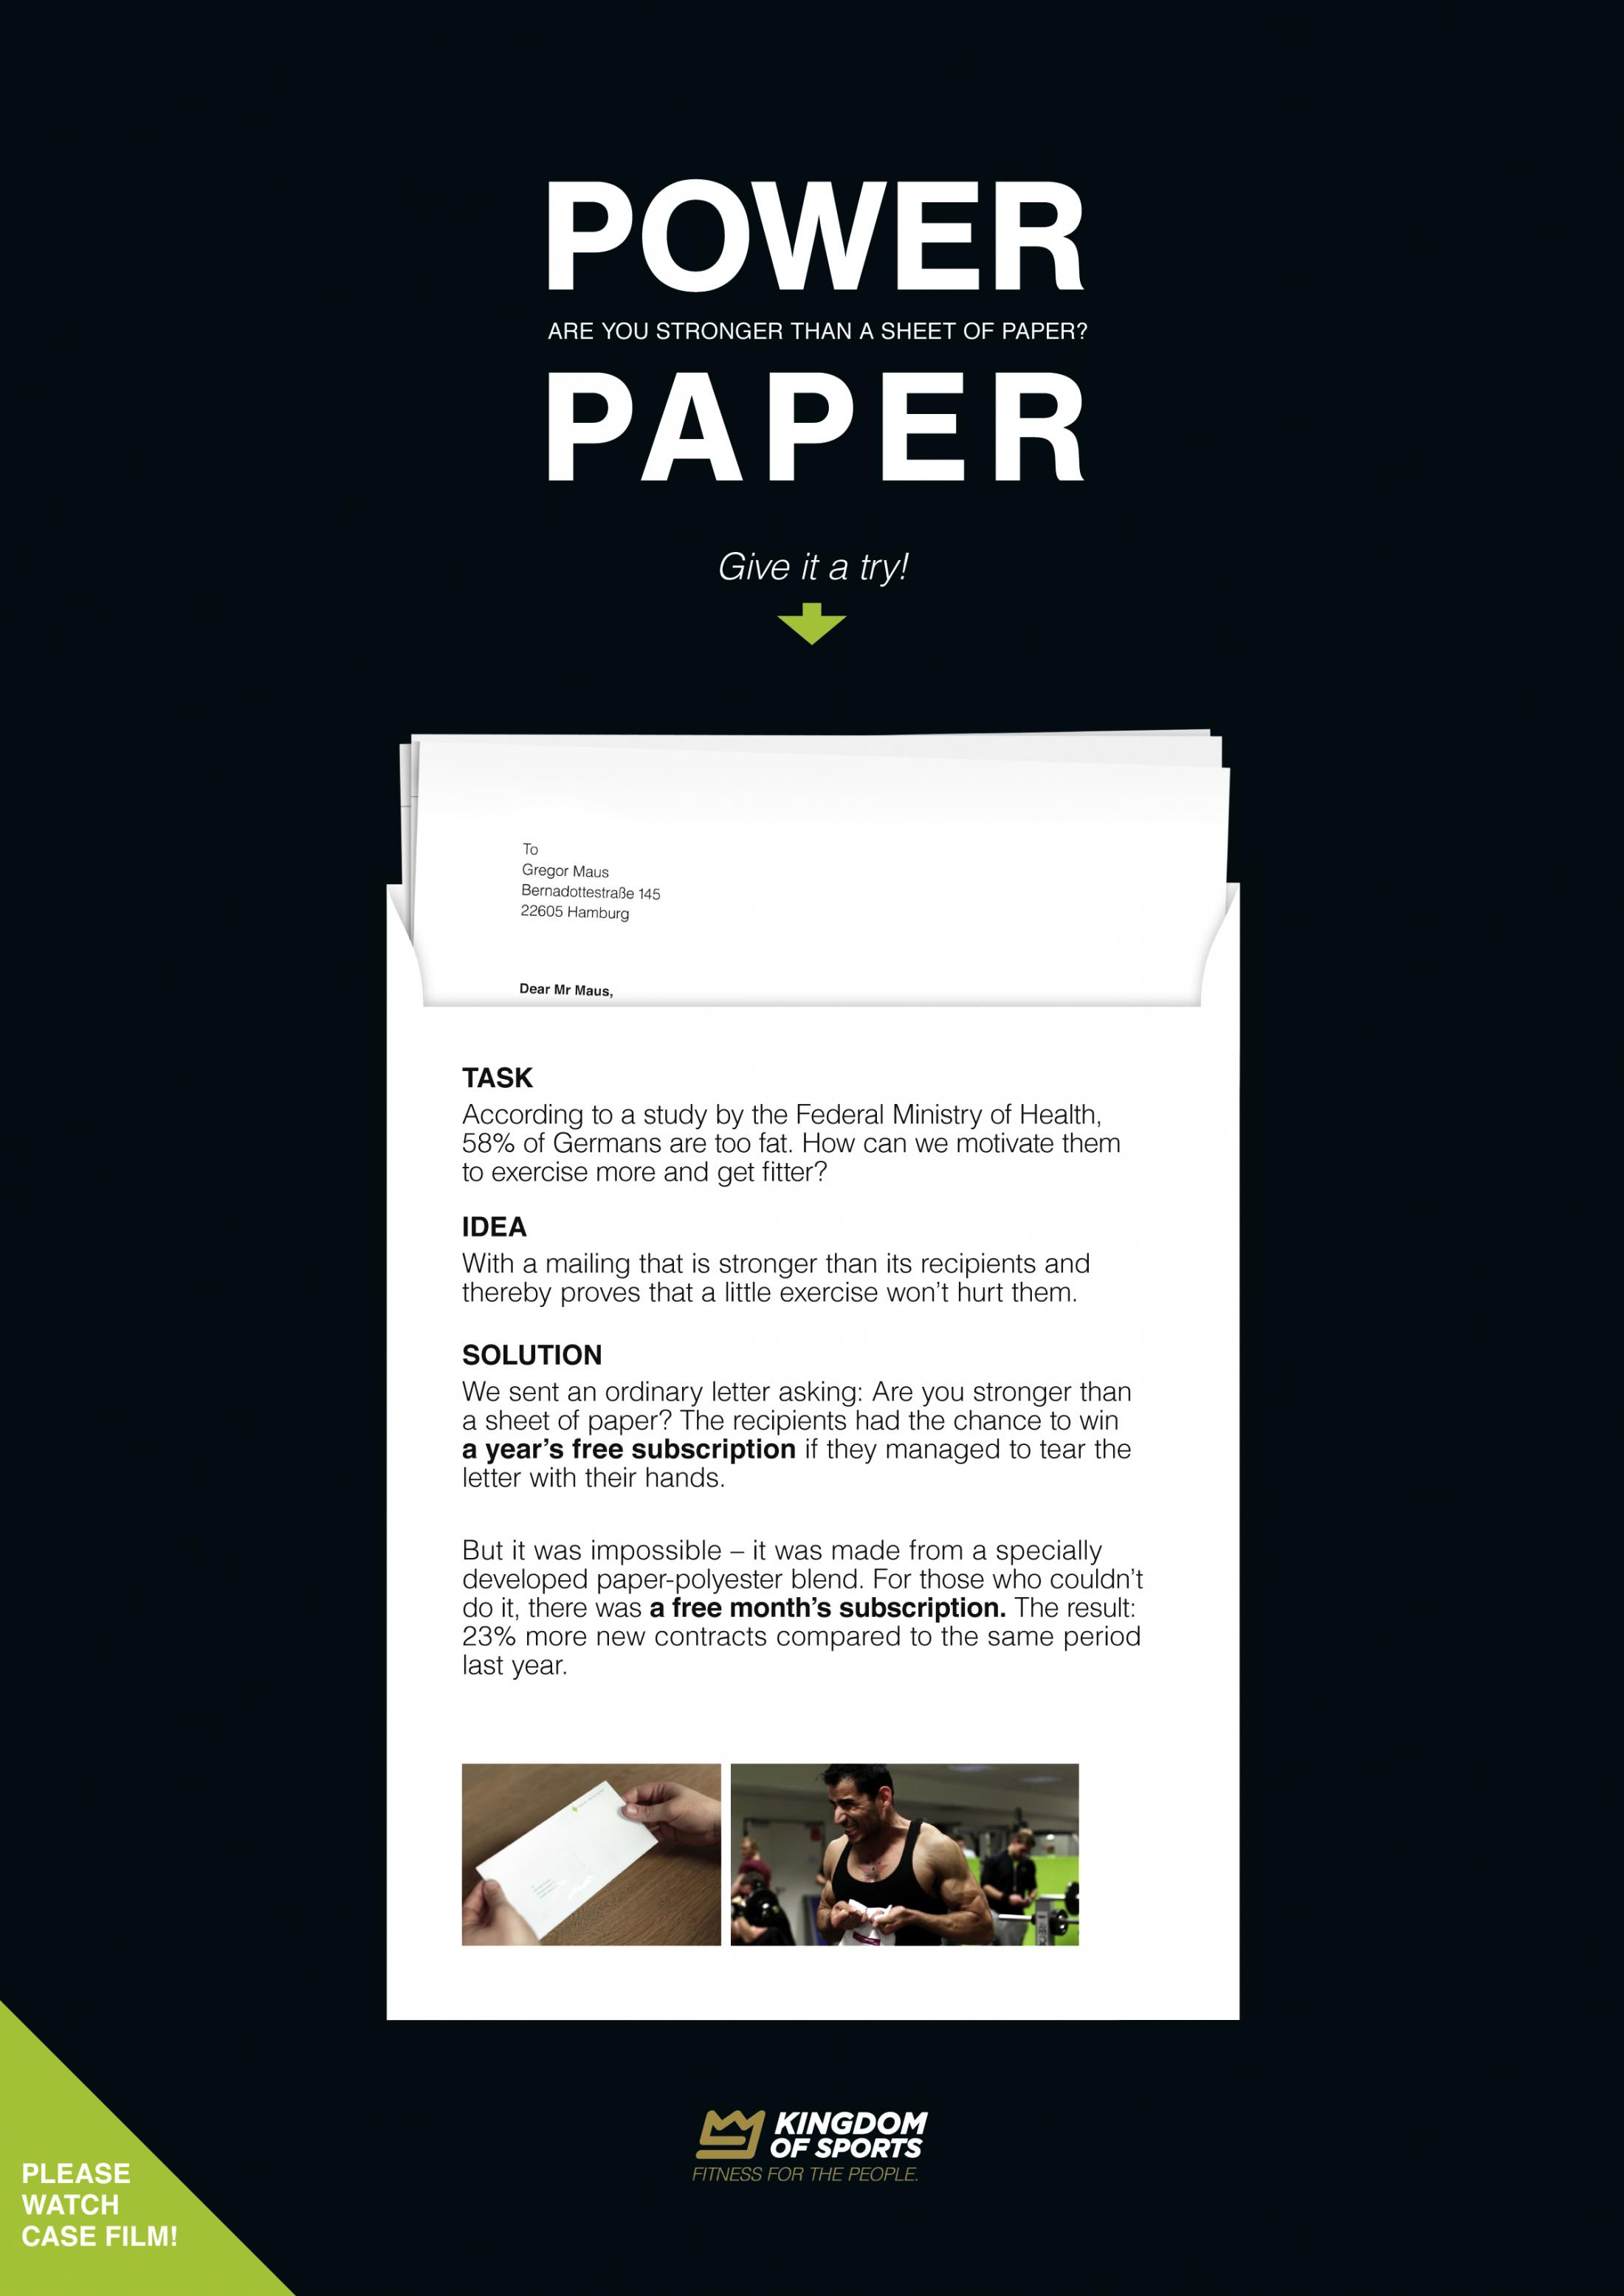 Image Media for The Power Paper